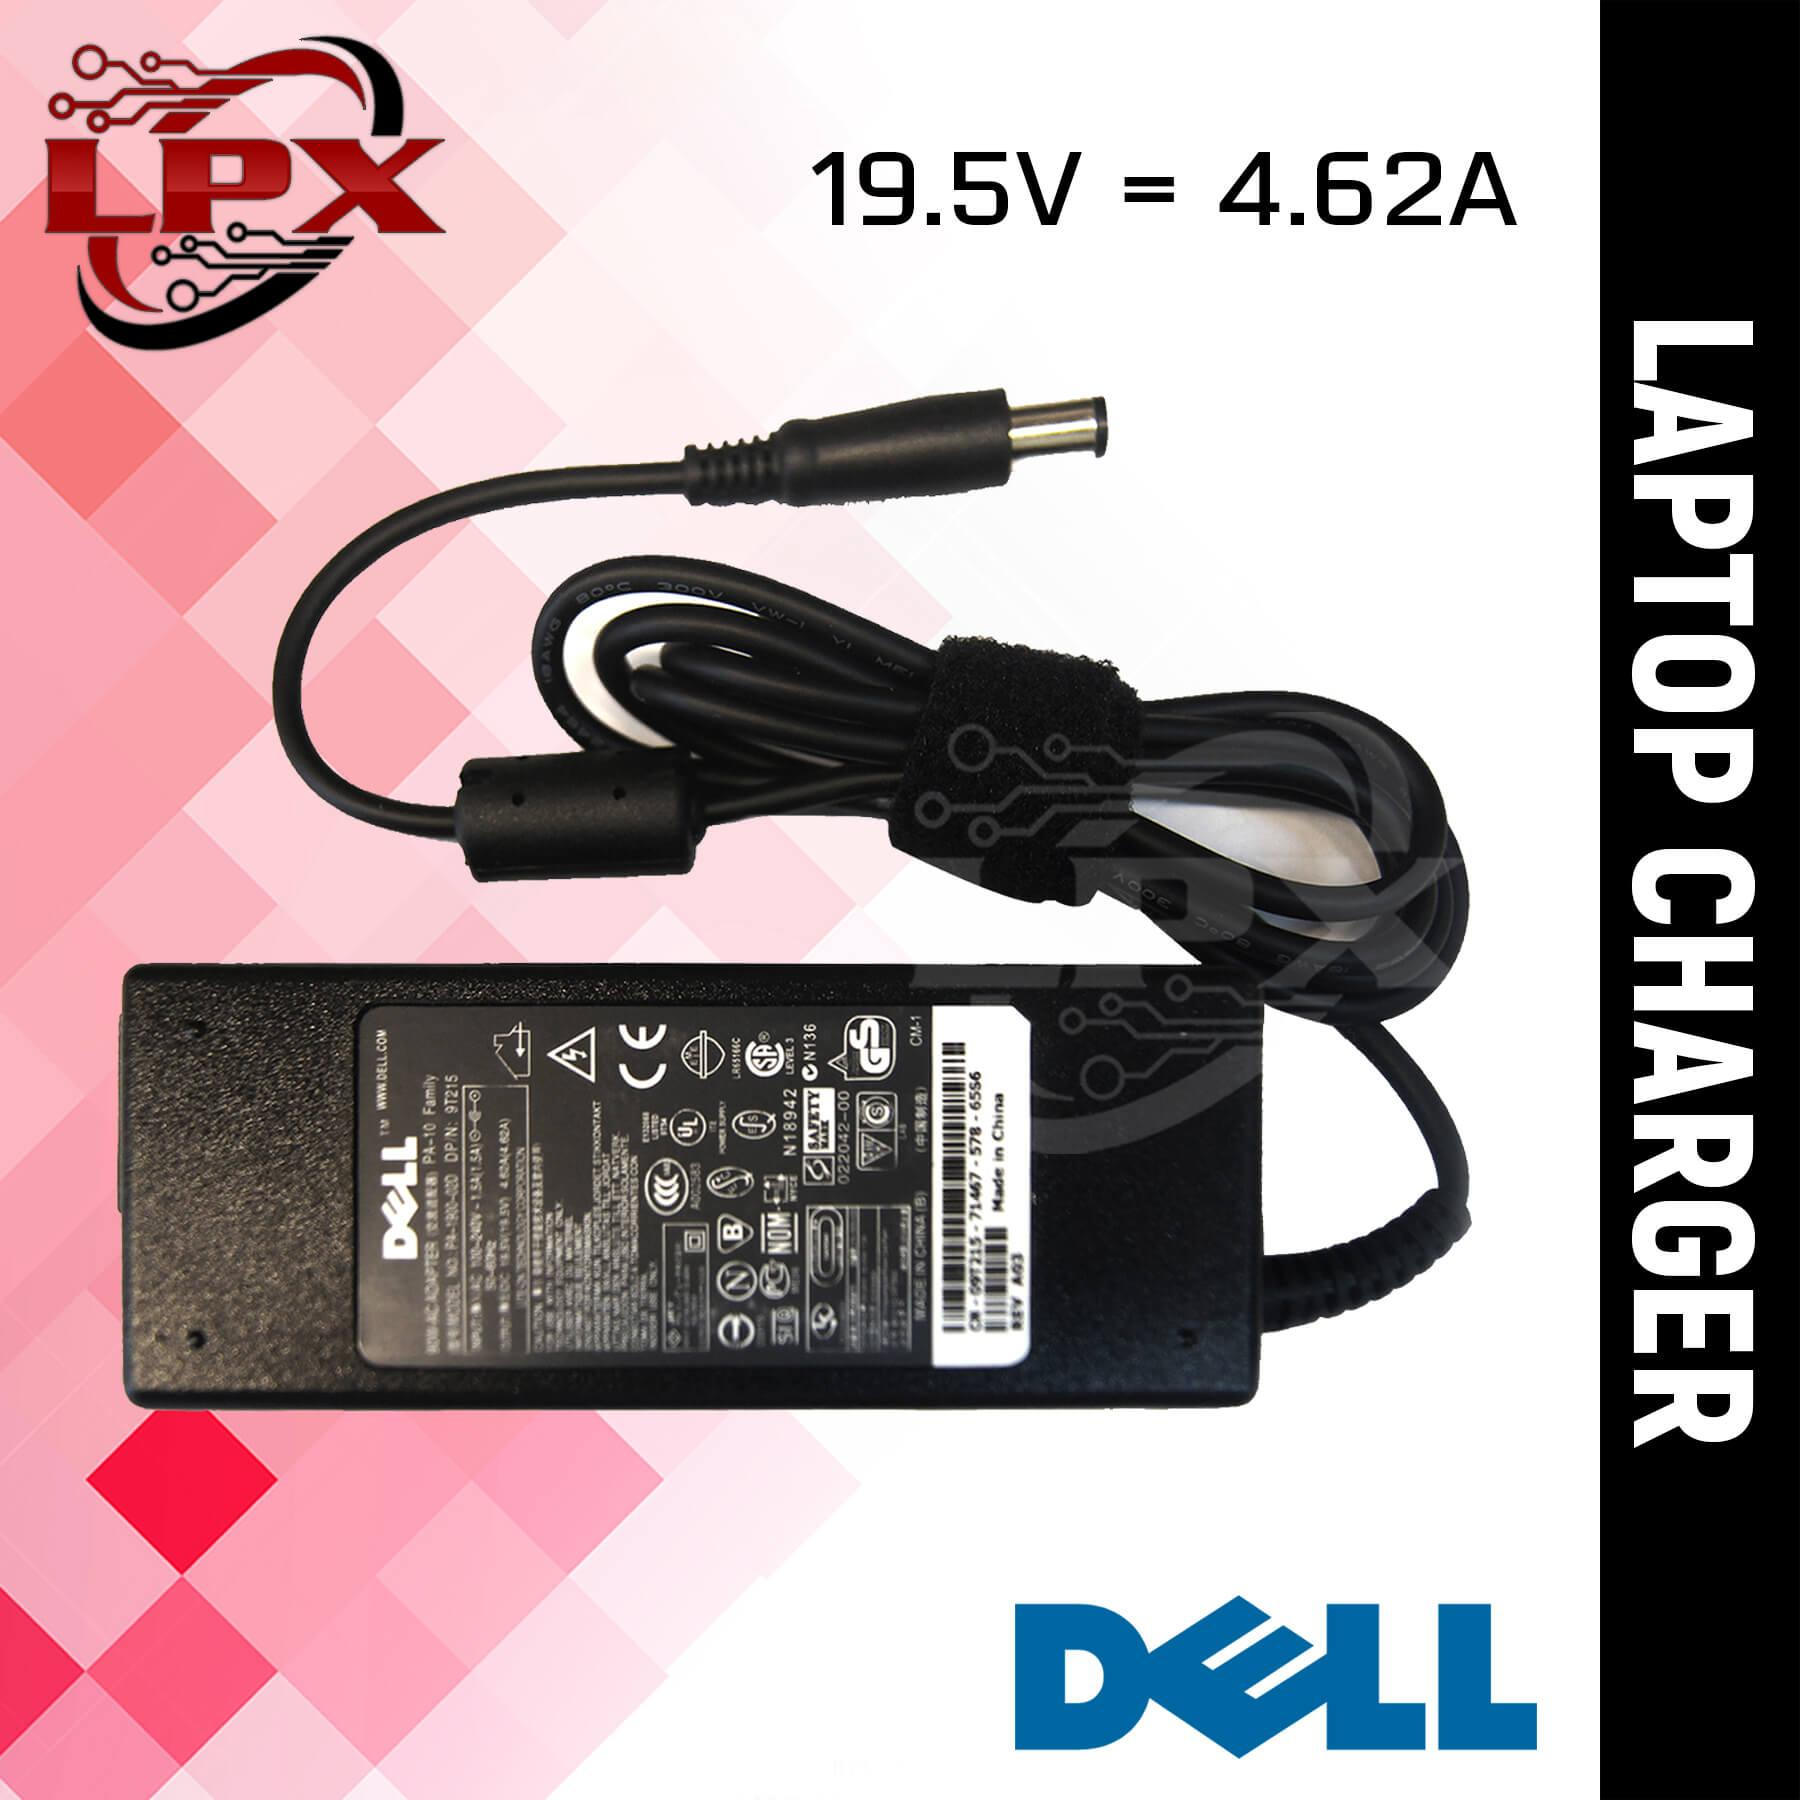 Laptop Notebook Charger Adapter for DELL 19V 4 62A 7 4mm x 5 0mm INSPIRON  N5010 N5030 N5050 N5110 N7010 N7110